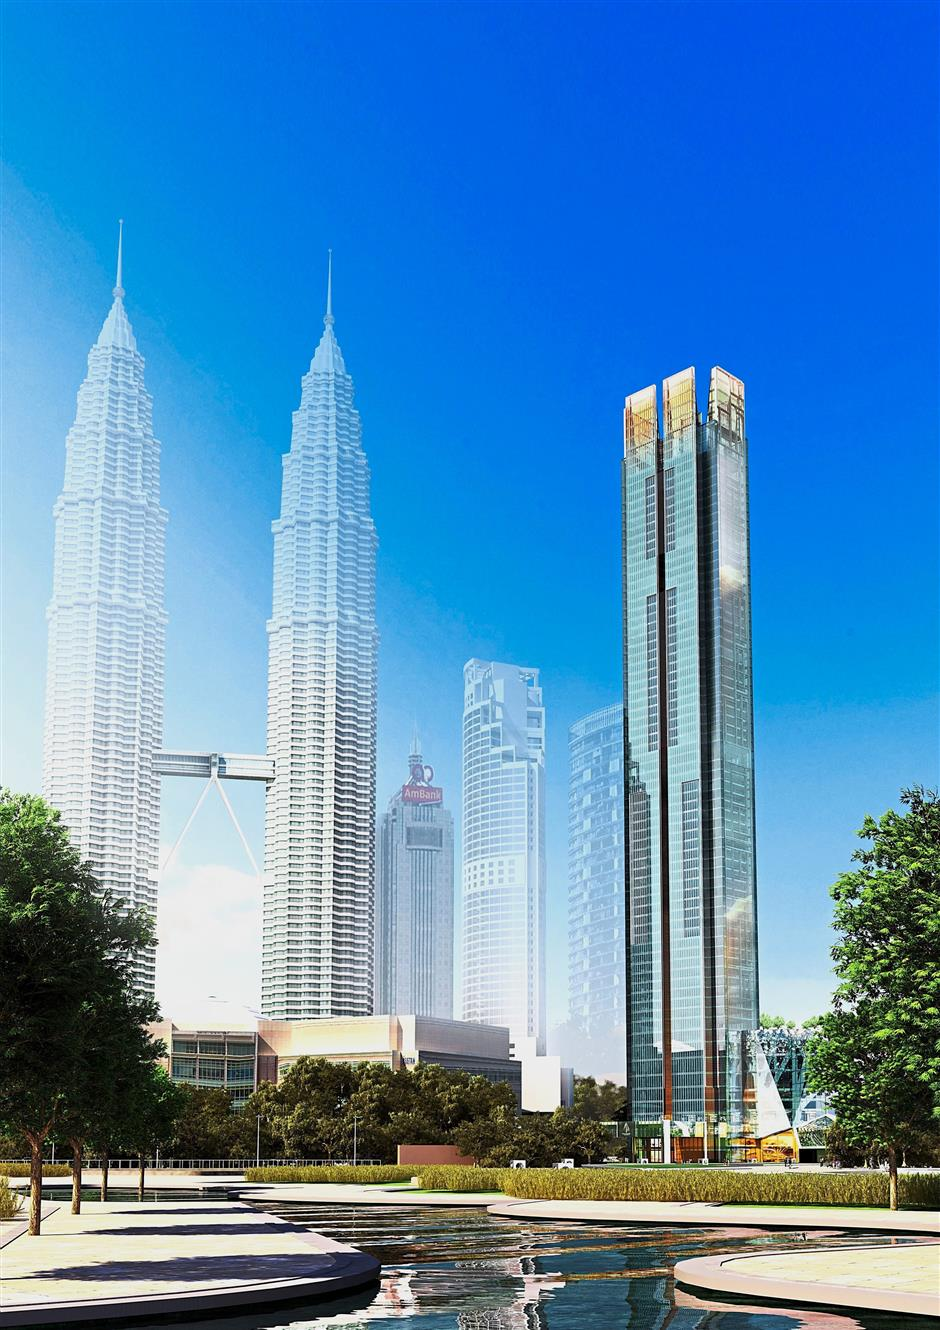 Artist's impression of the completed Four Seasons Place tower next to the Petronas Twin Towers.